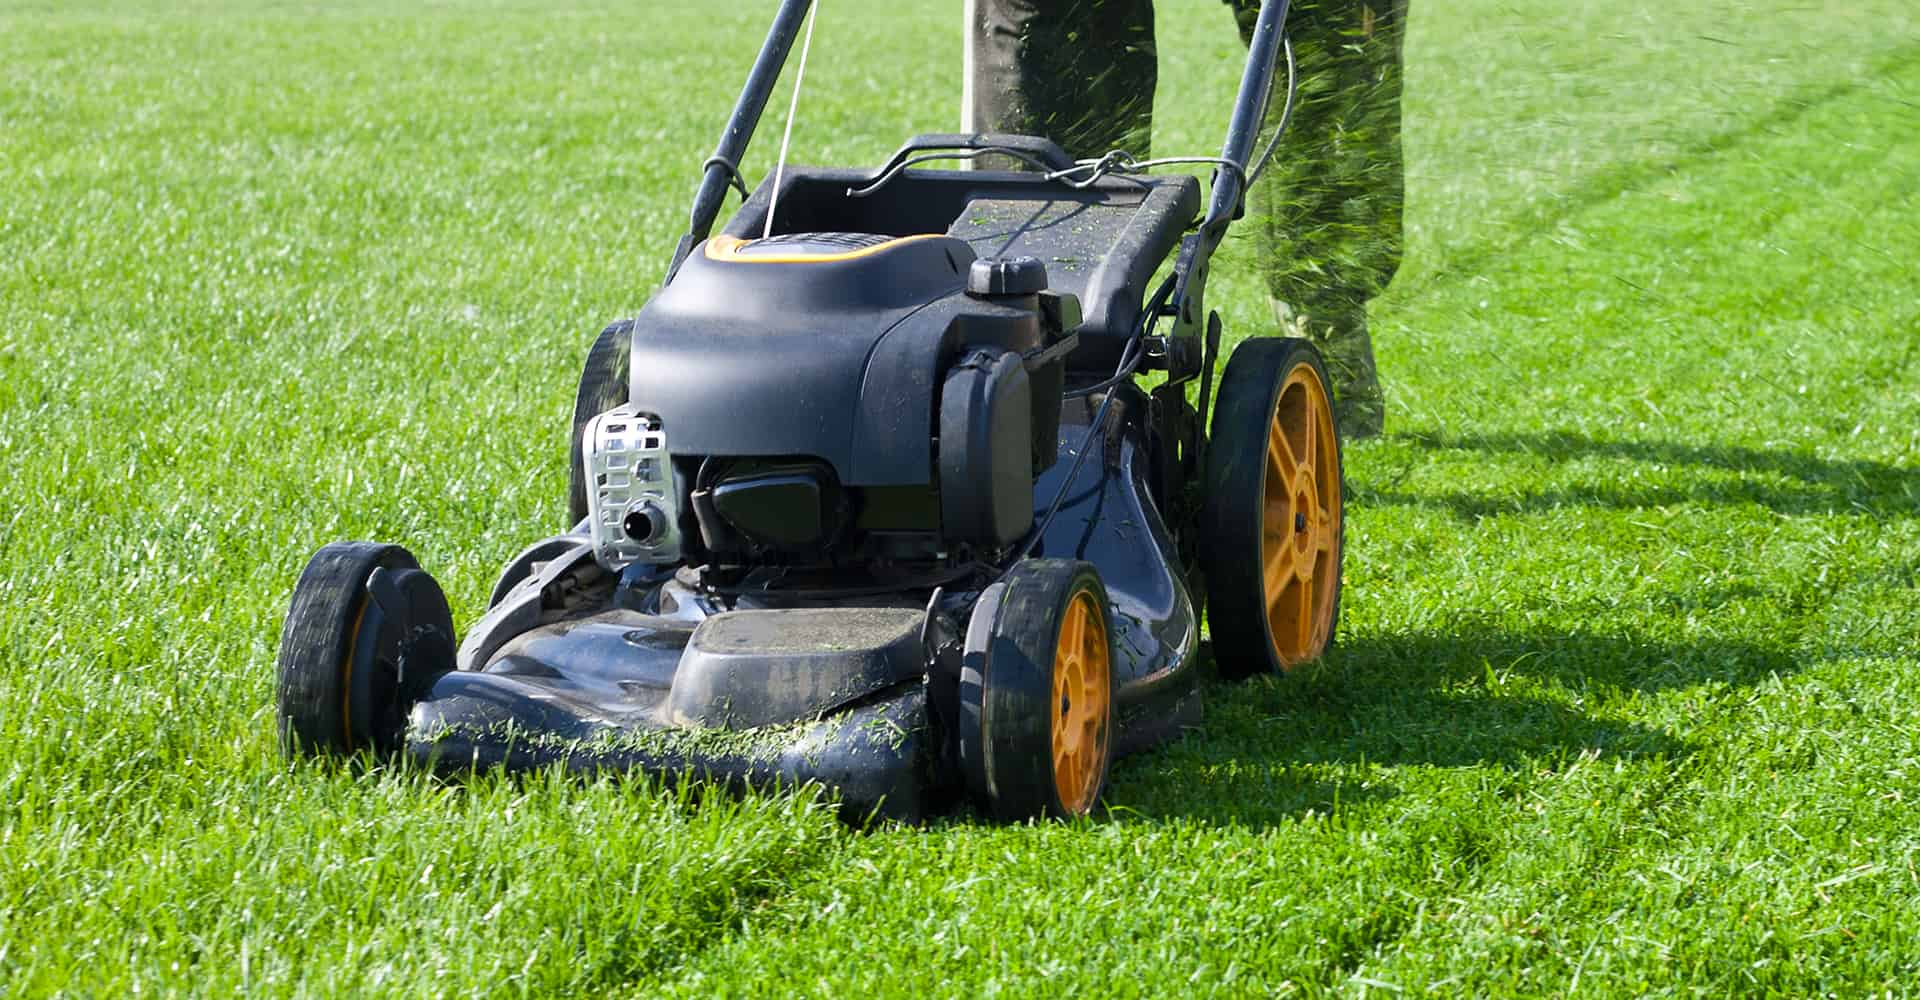 7 Best Lawn Mowers For Uk Gardens  Oct 2020 Review